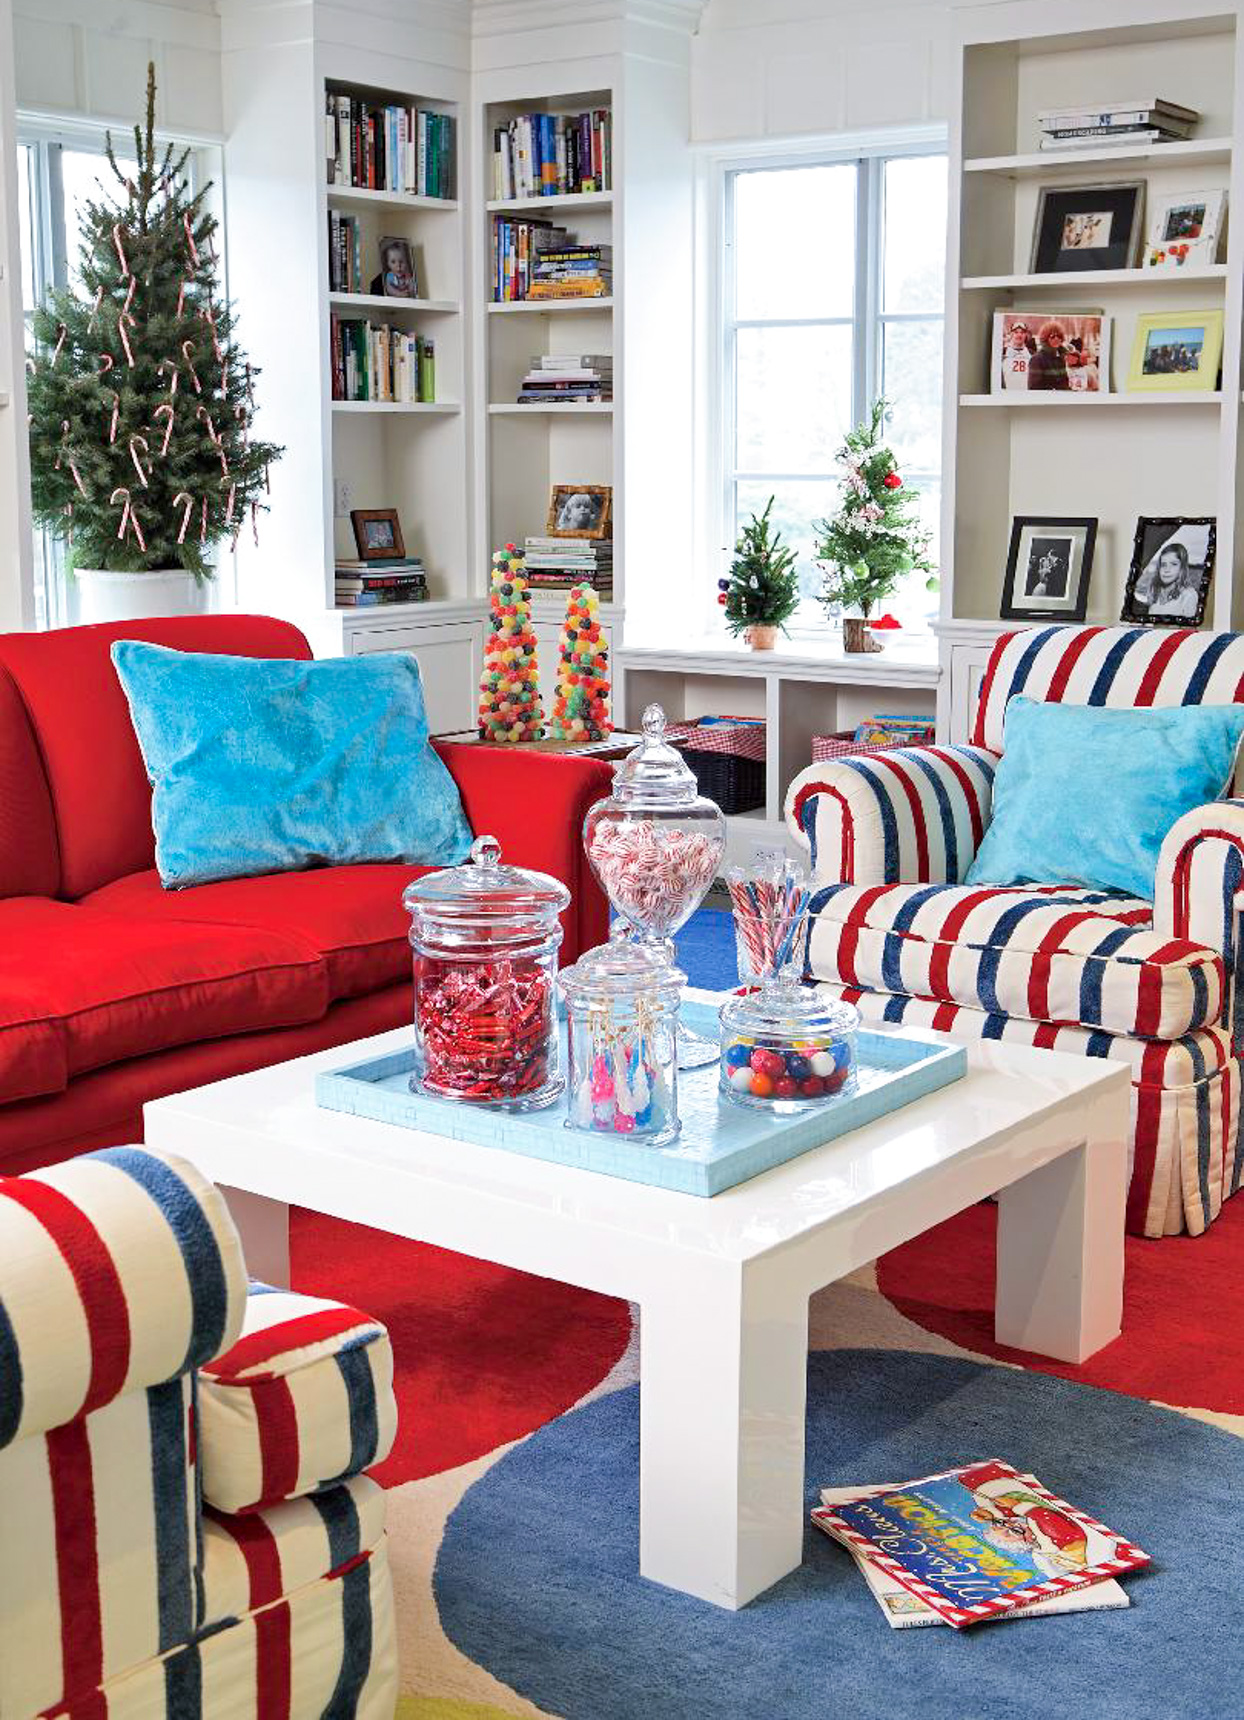 Living room with striped chairs and small Christmas trees